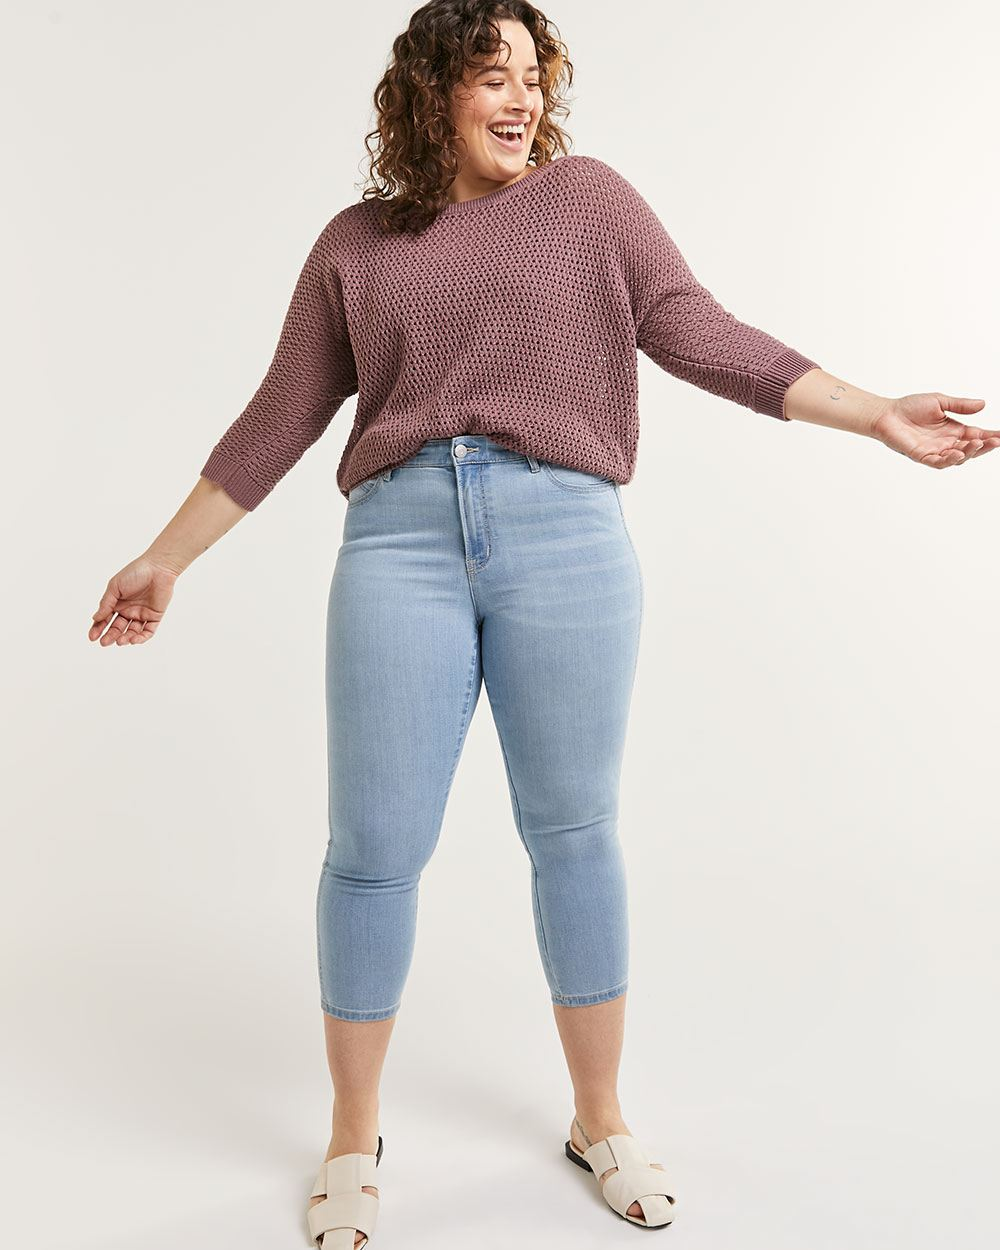 High Rise Cropped Jeans The Signature Soft